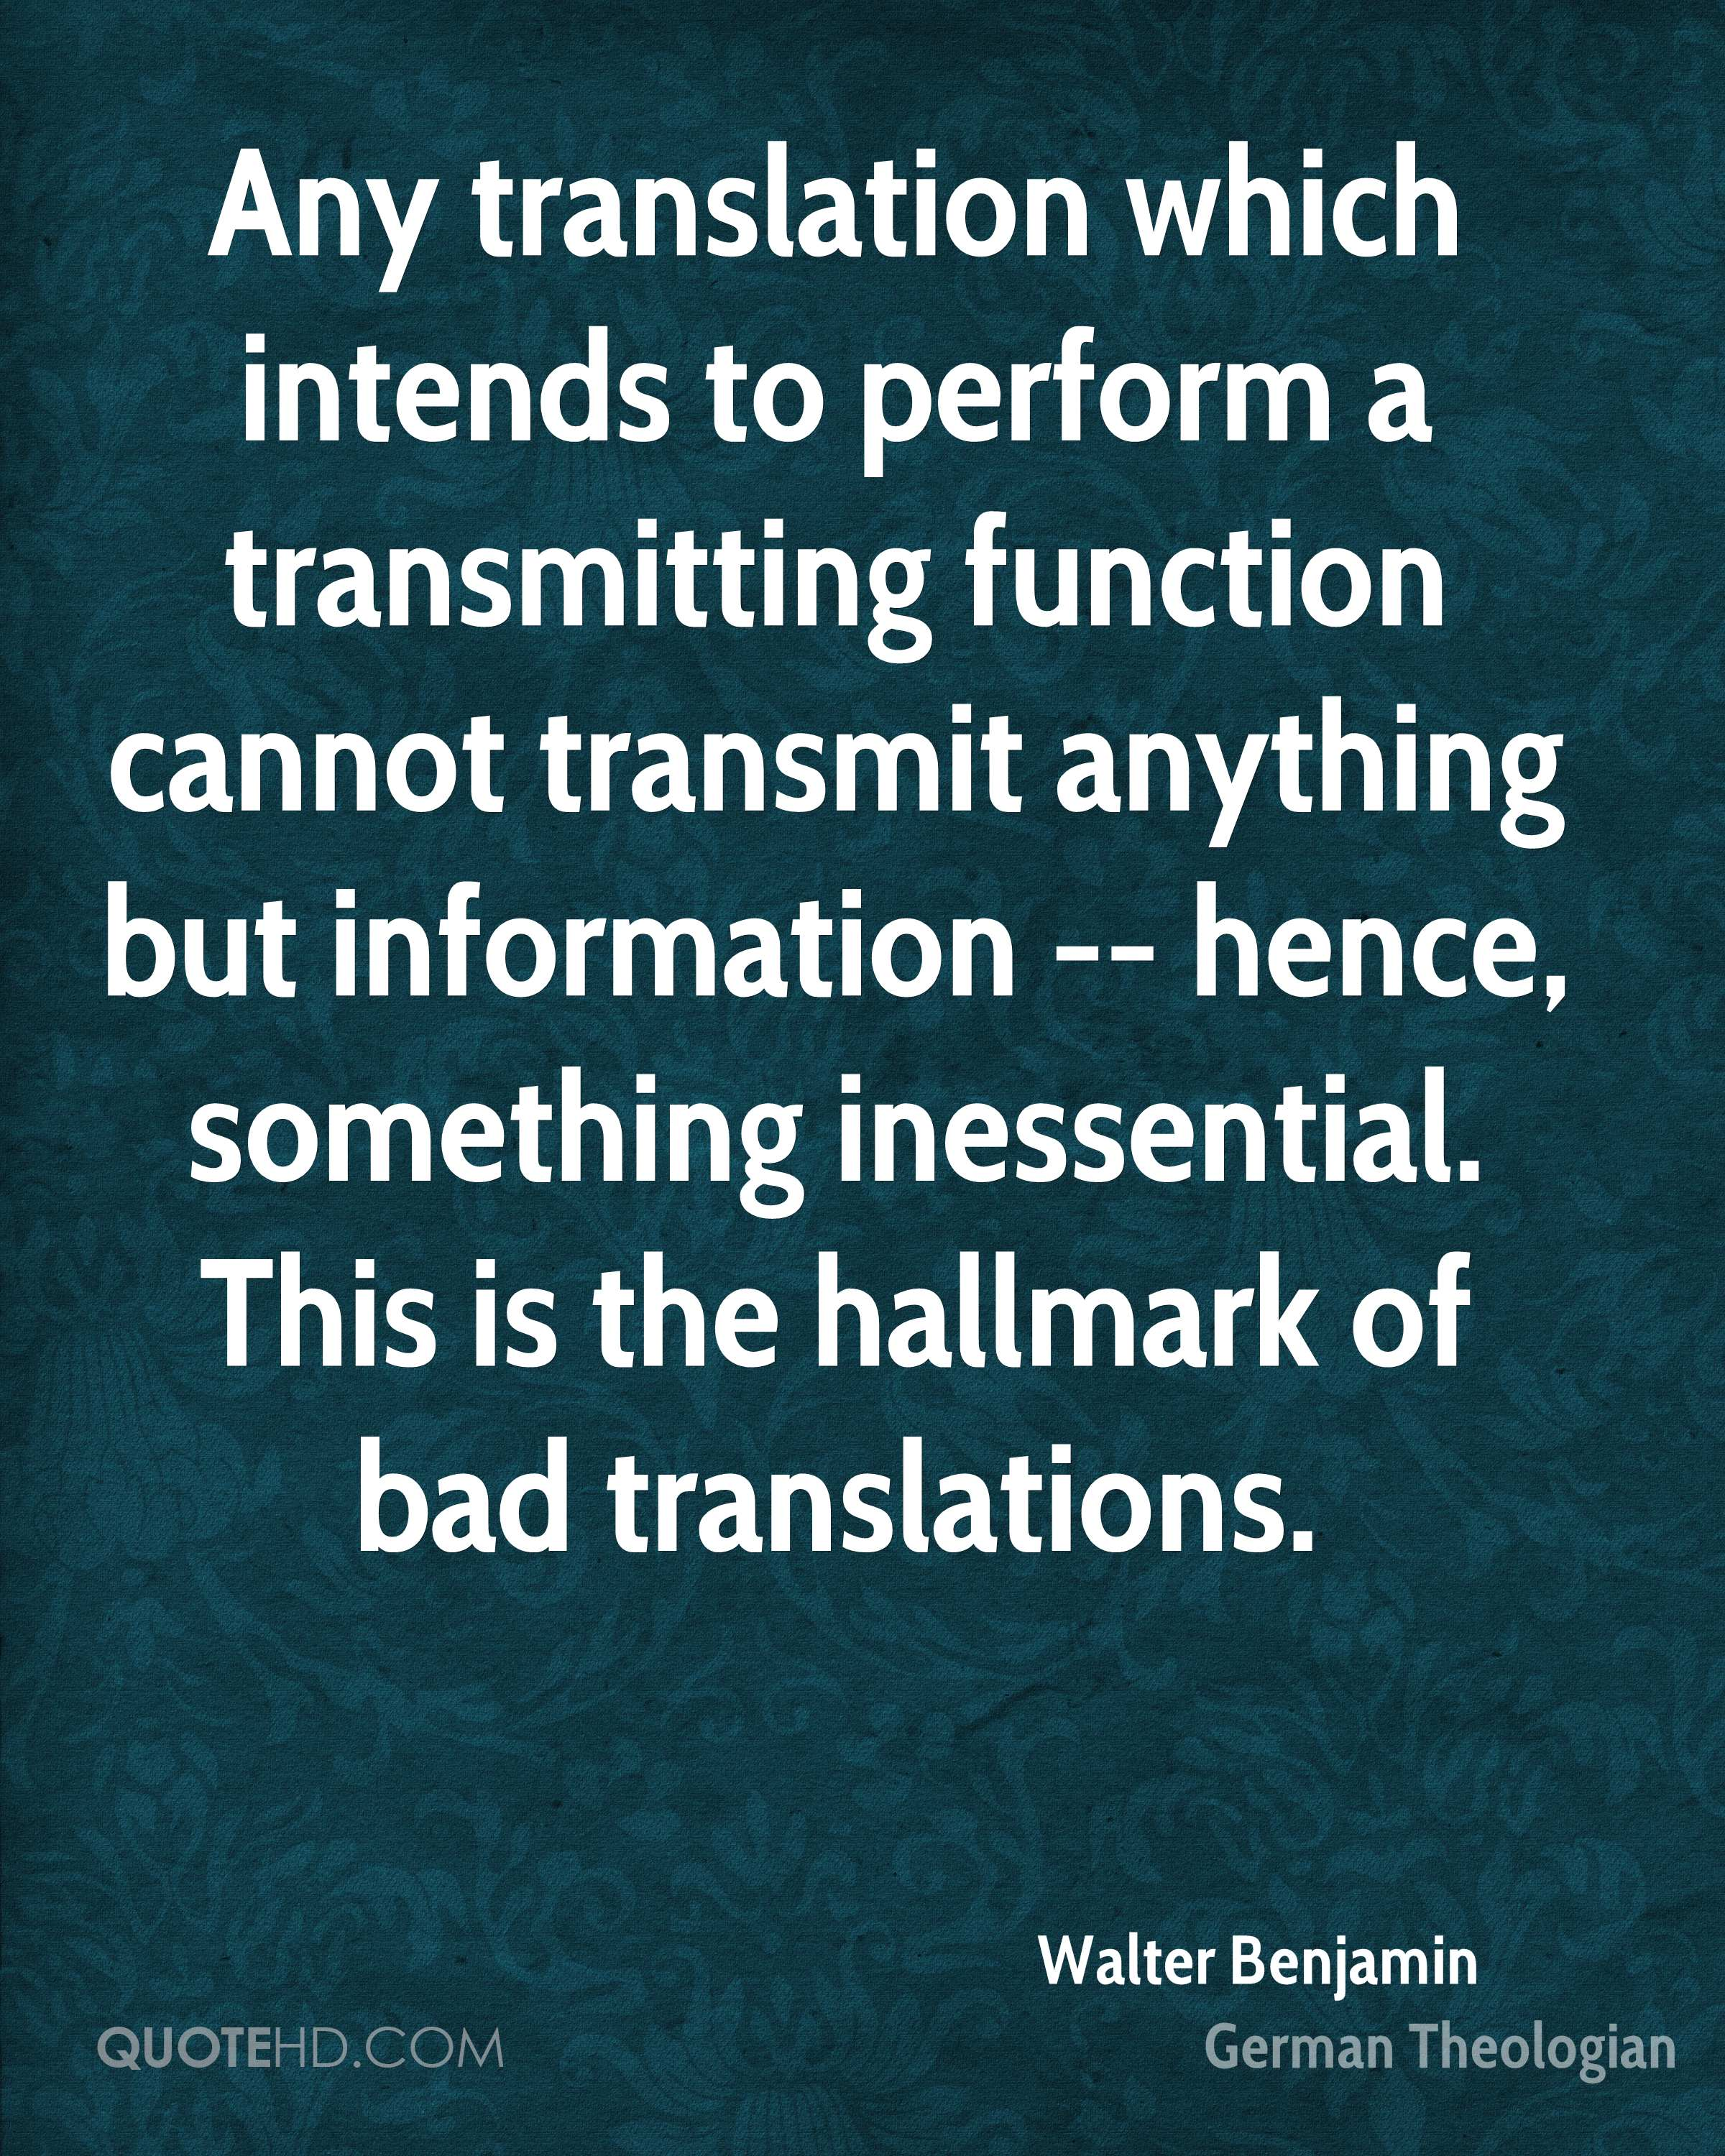 Any translation which intends to perform a transmitting function cannot transmit anything but information -- hence, something inessential. This is the hallmark of bad translations.